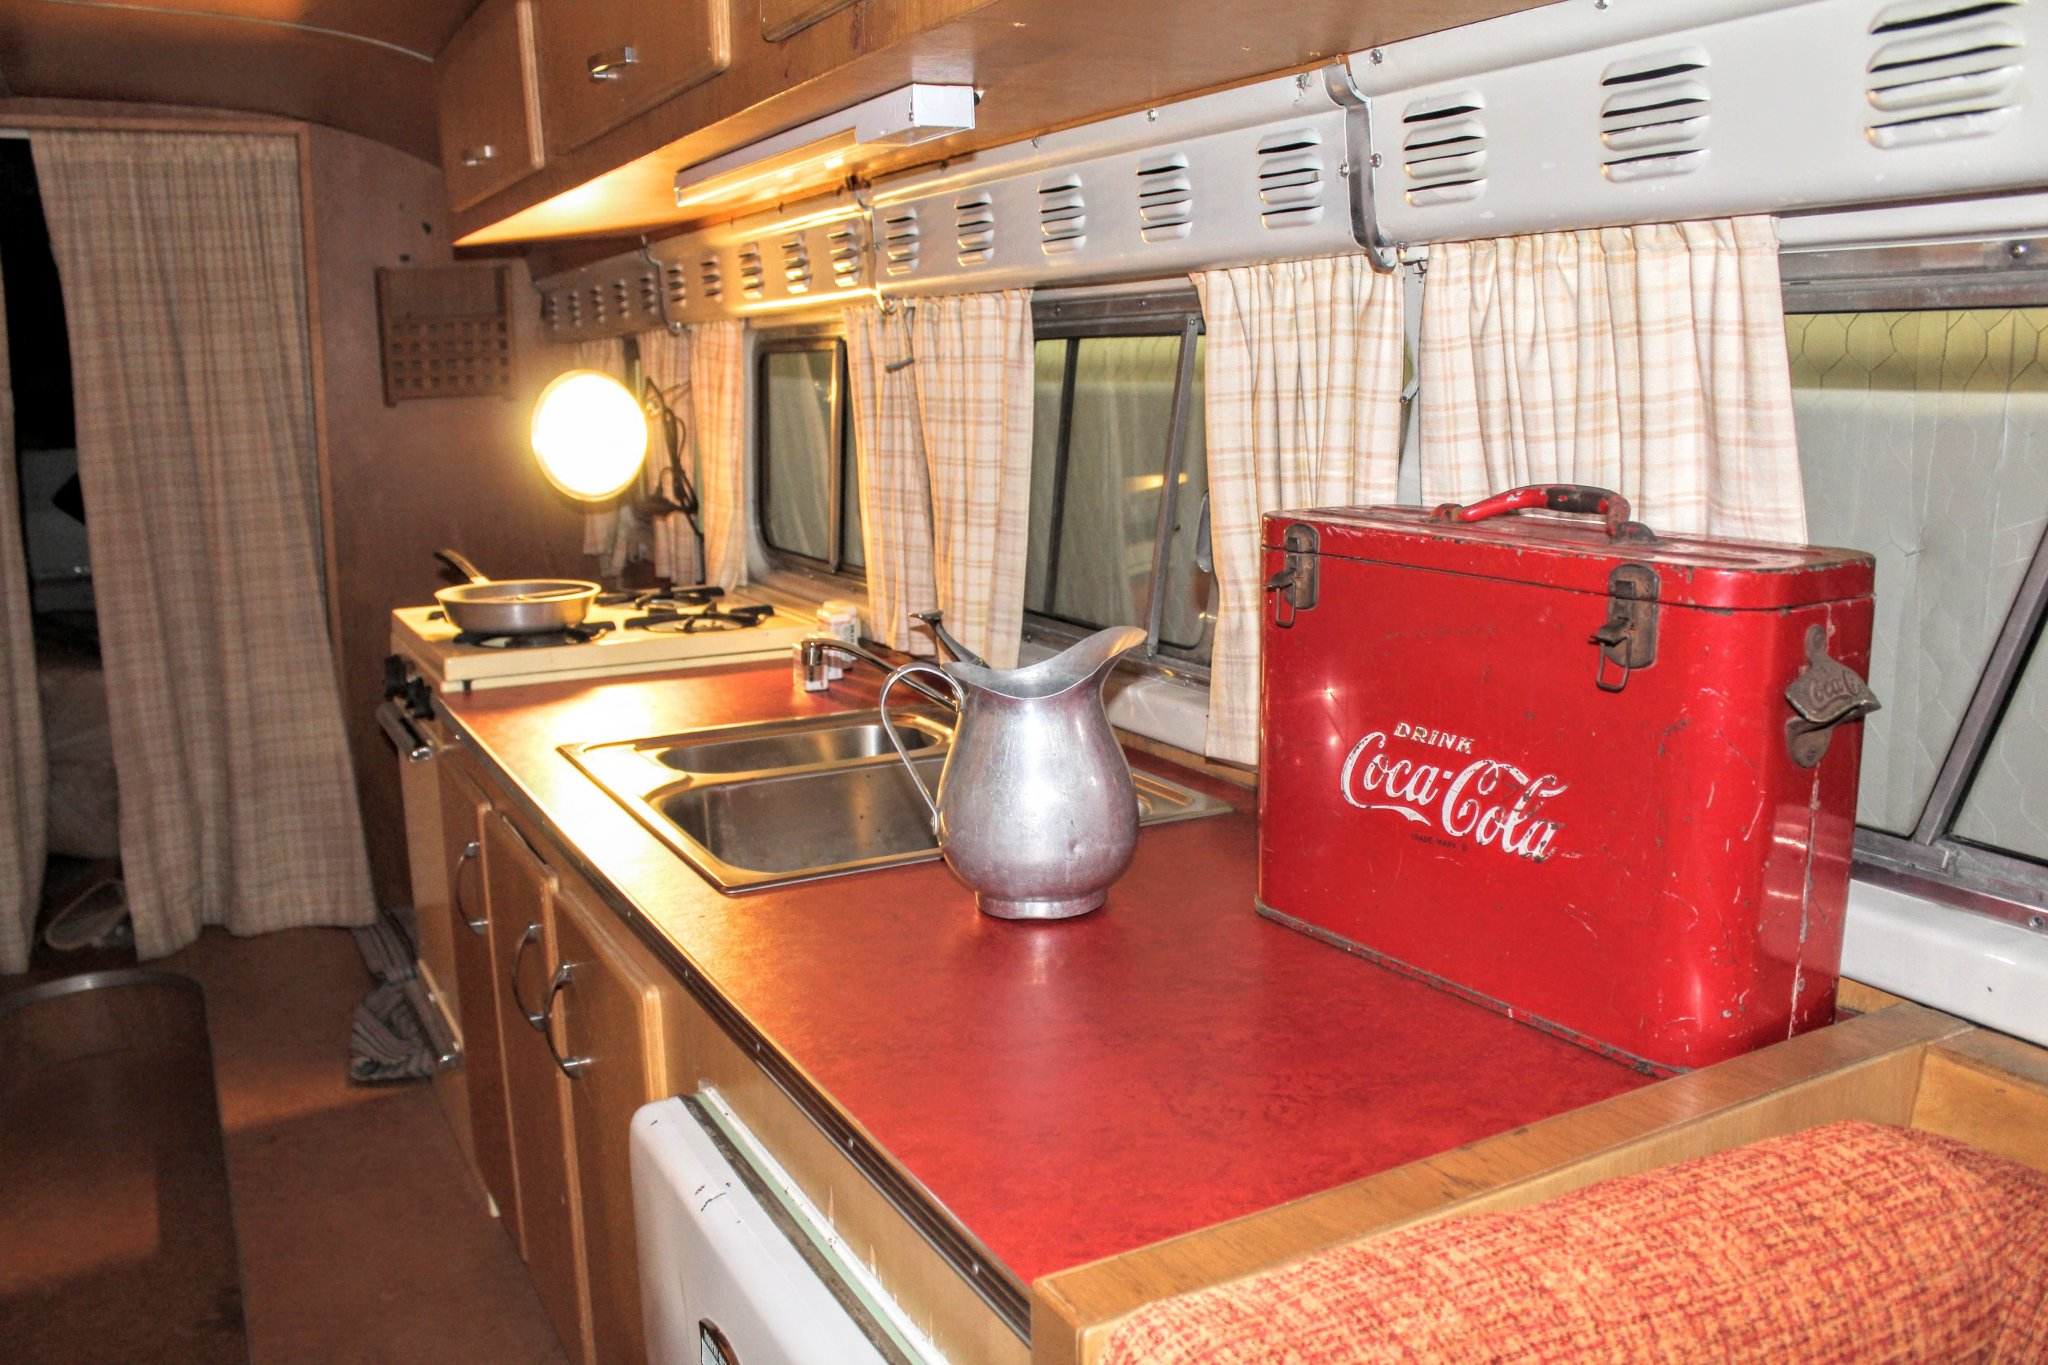 Offbeat Things to Do in Amarillo: Closer Look at RV